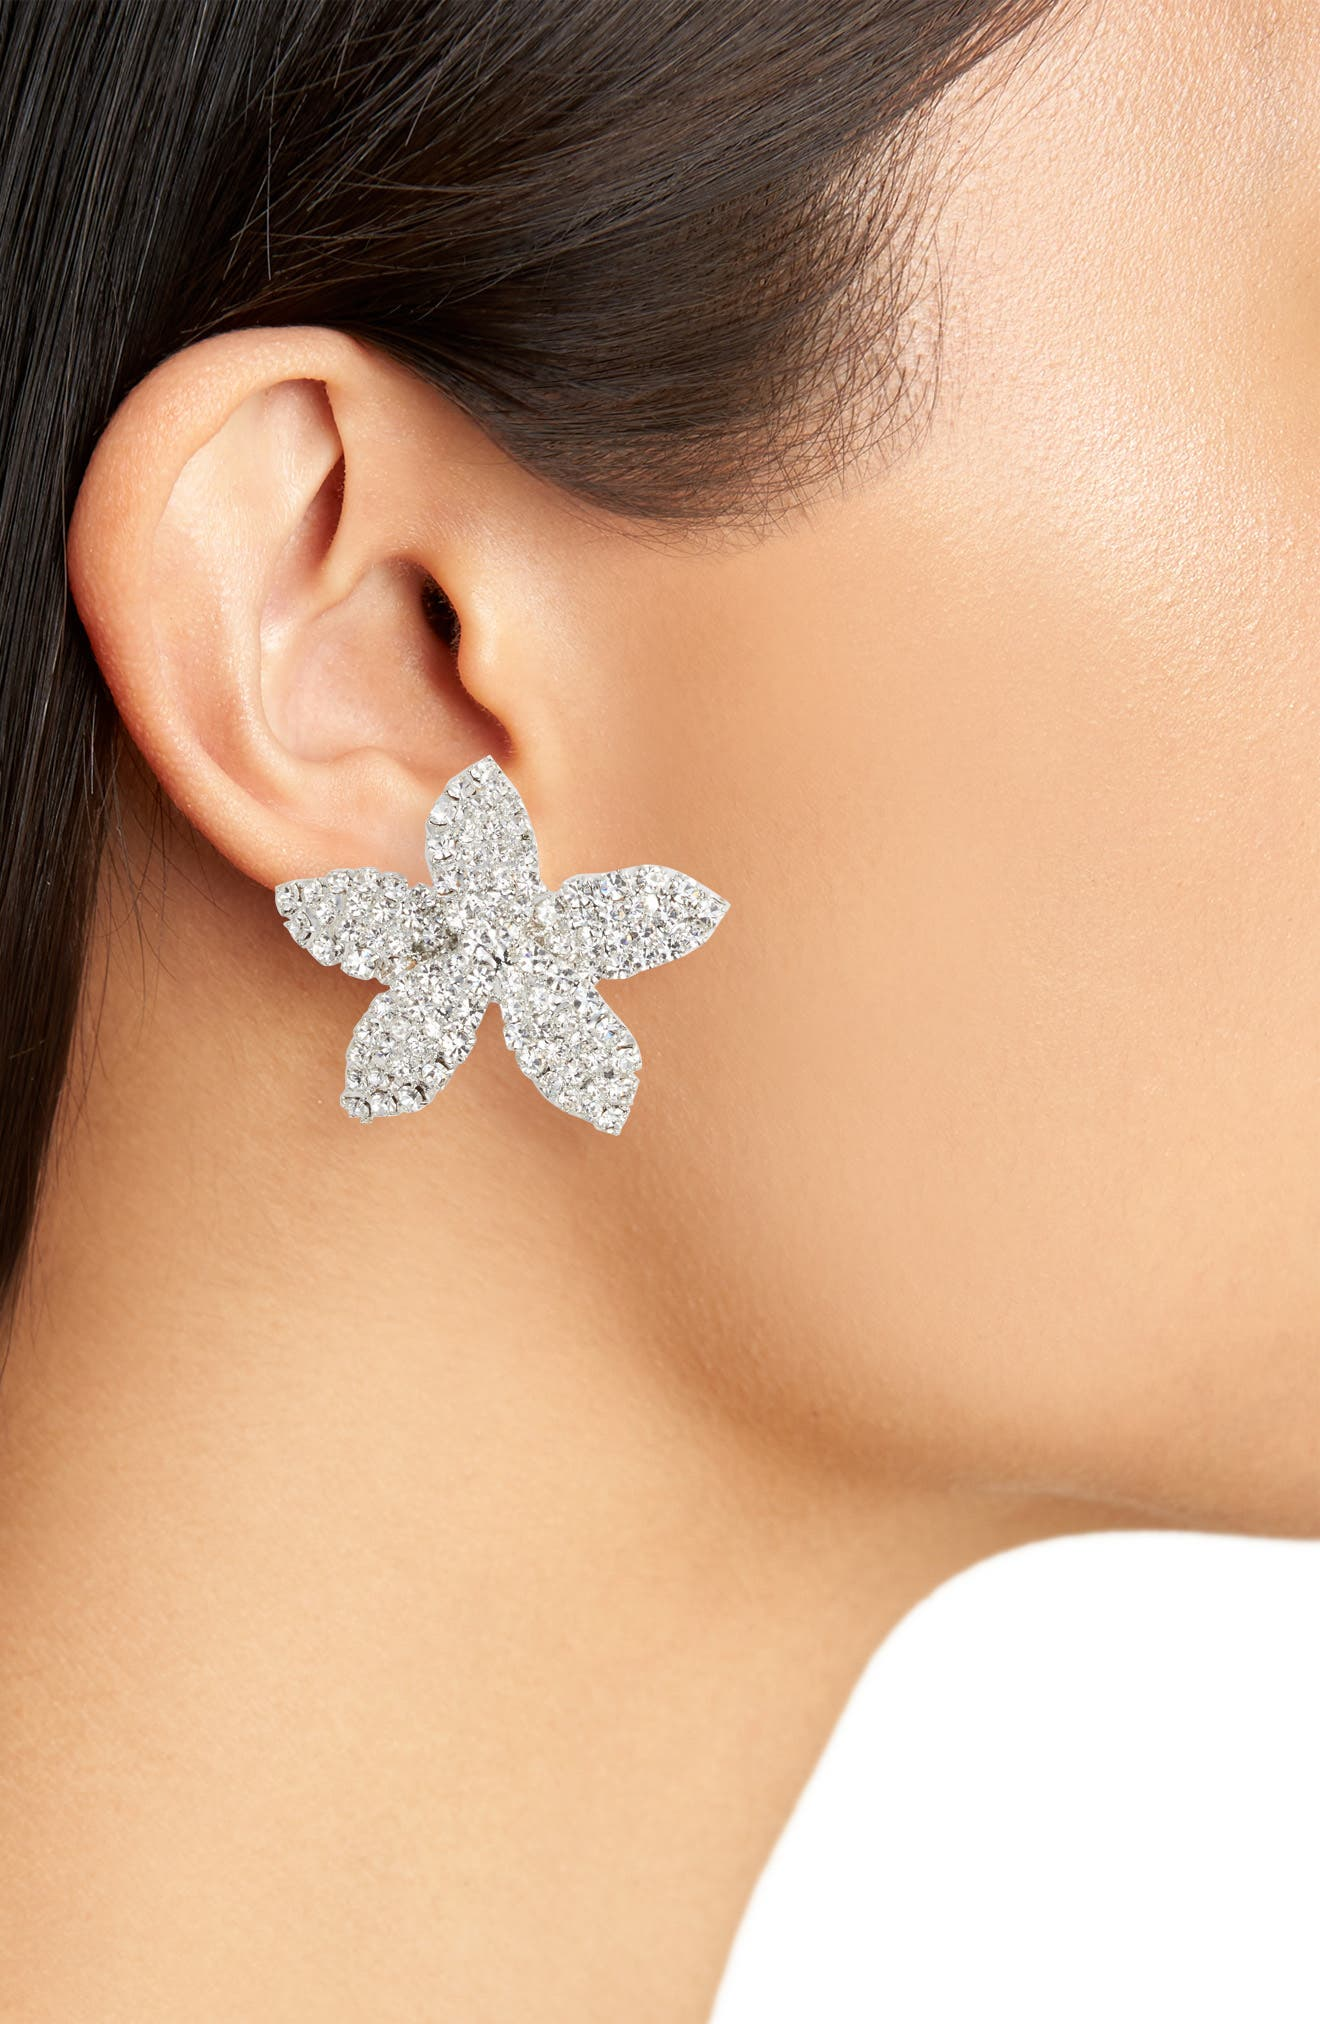 Small Flower Crystal Post Earrings,                             Alternate thumbnail 2, color,                             Crystal/ Silver